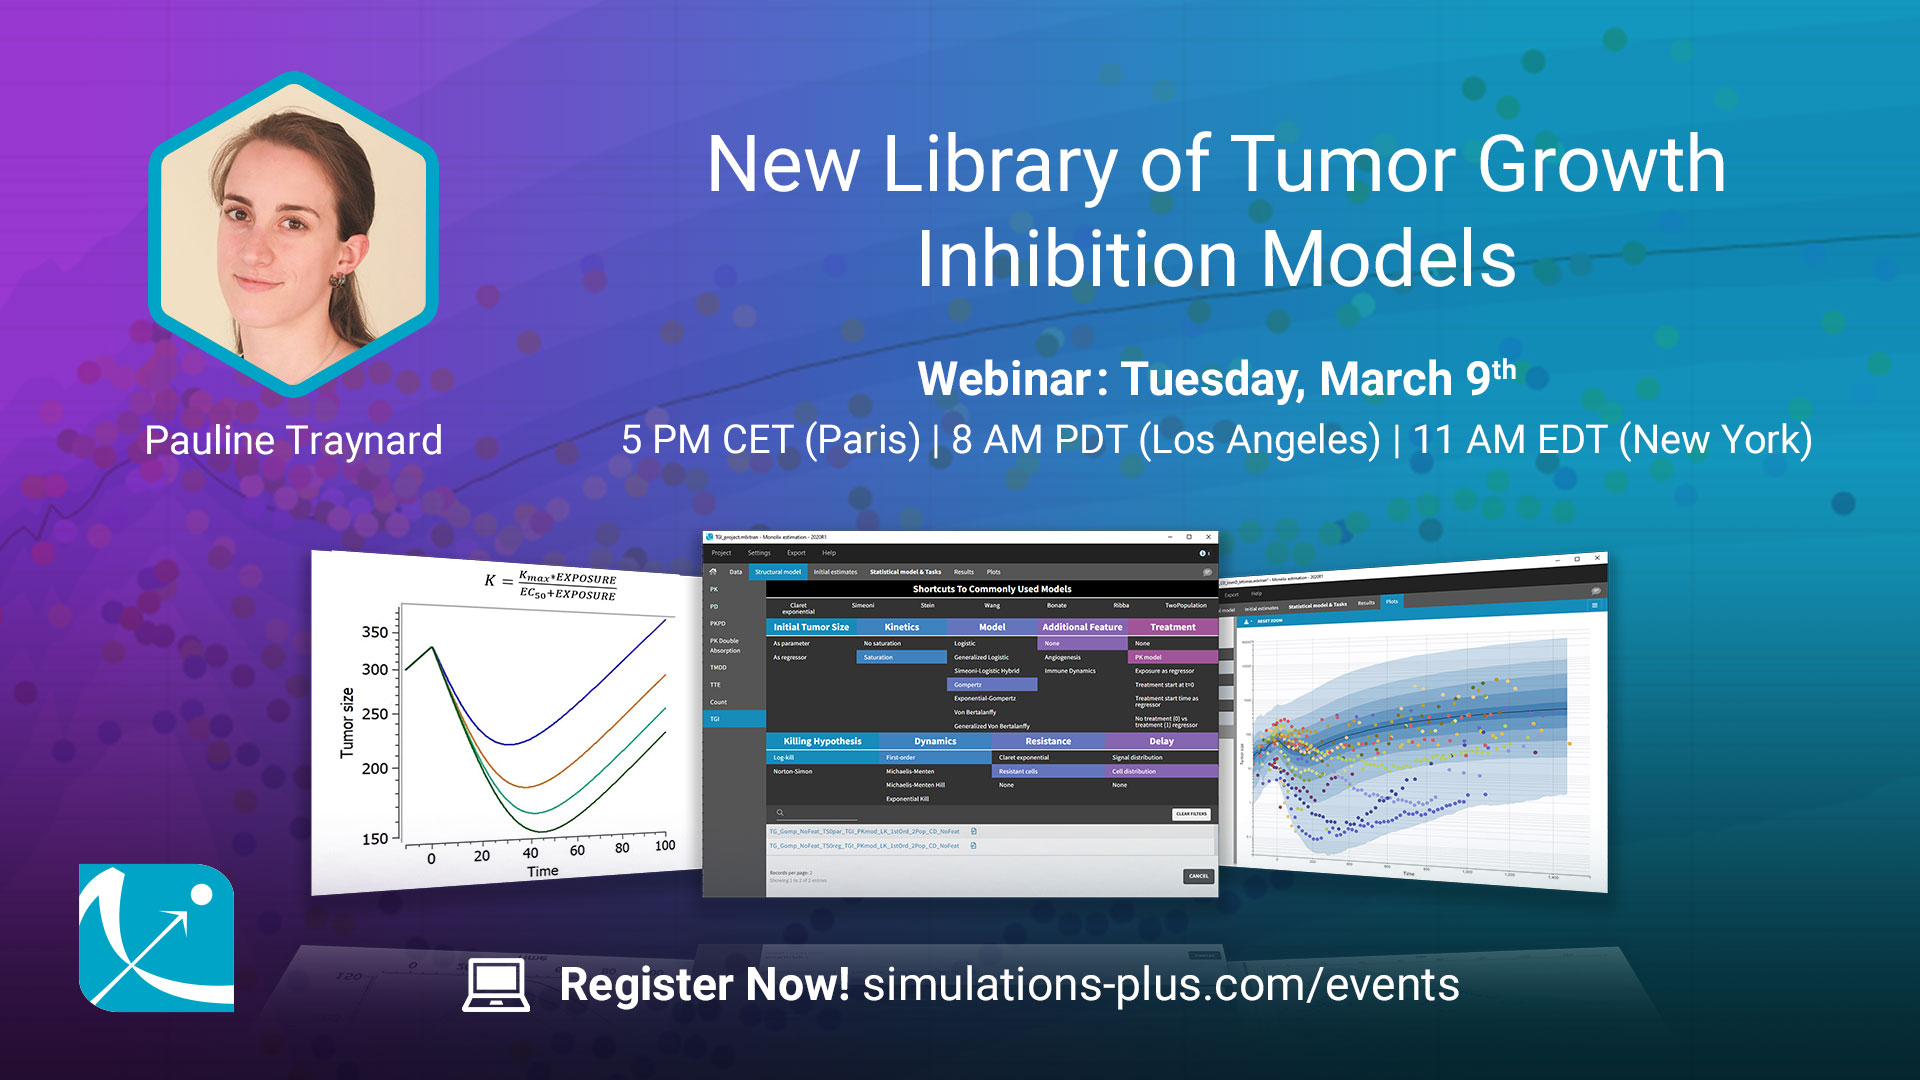 New Library of Tumor Growth Inhibition Models in Monolix